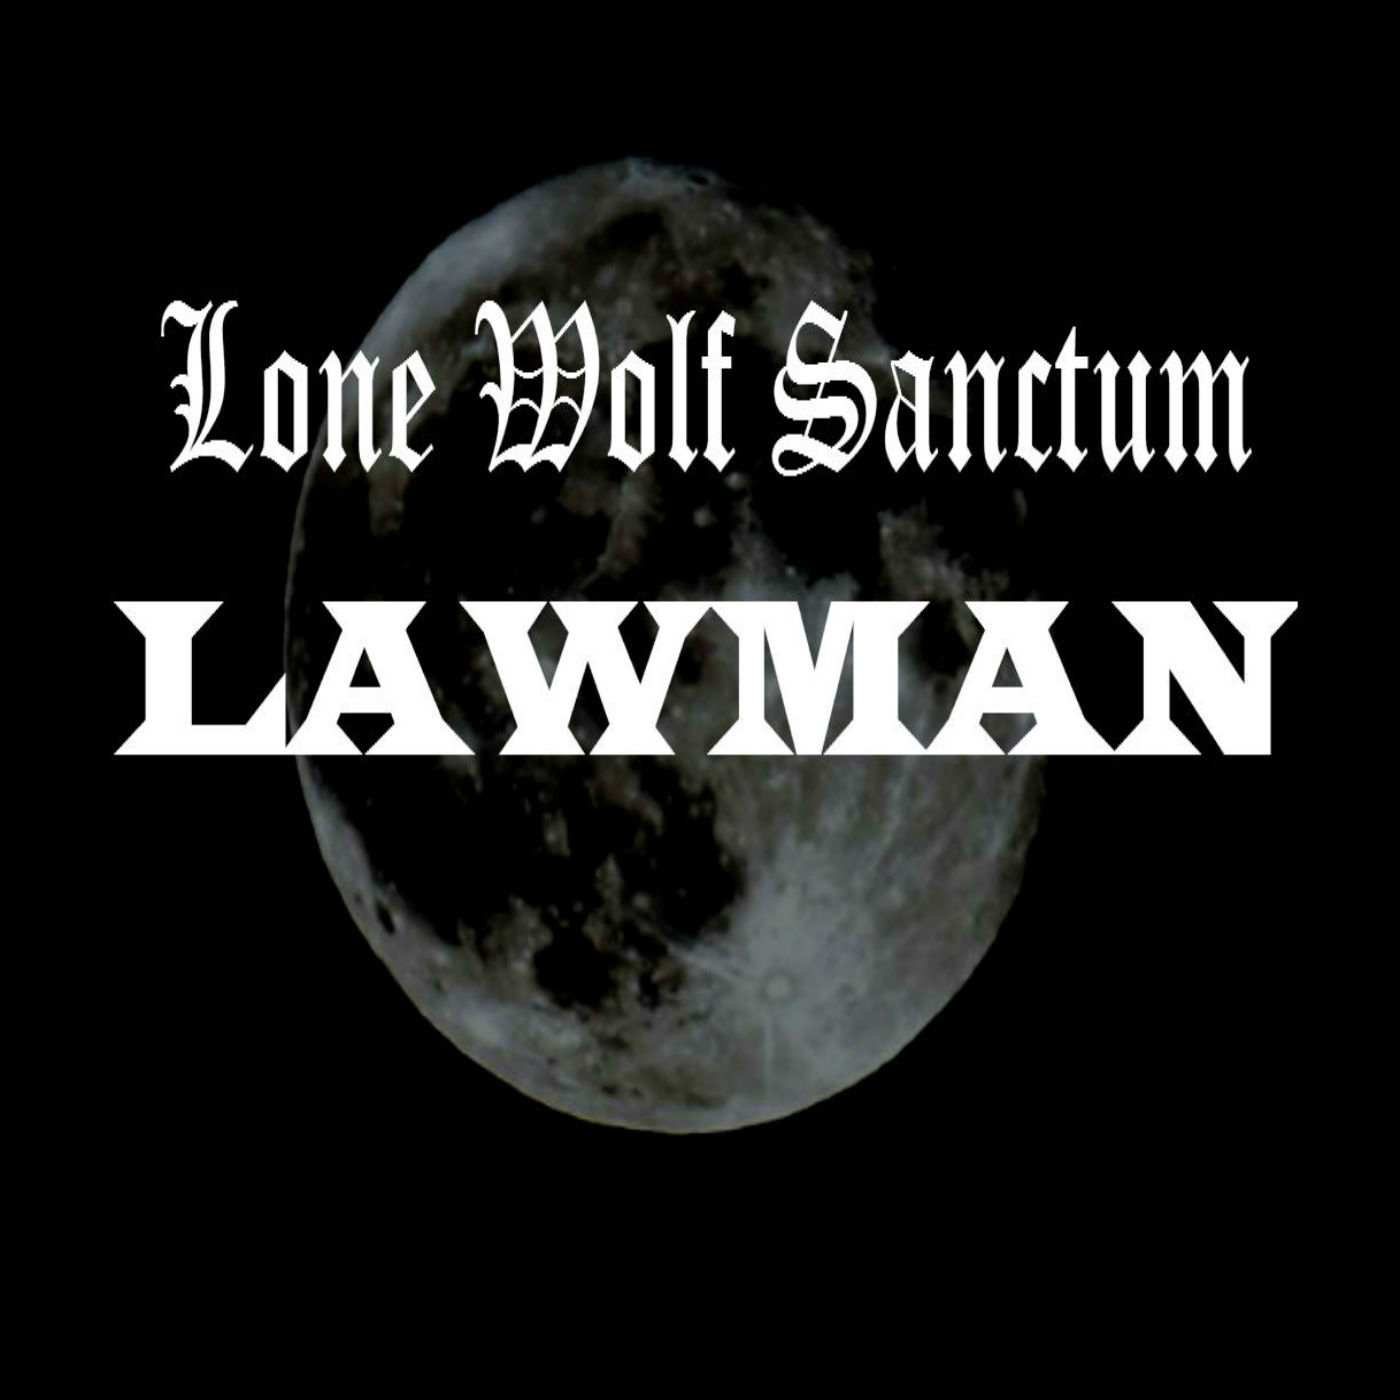 LAWMAN Artwork FULLMOON LOGO B